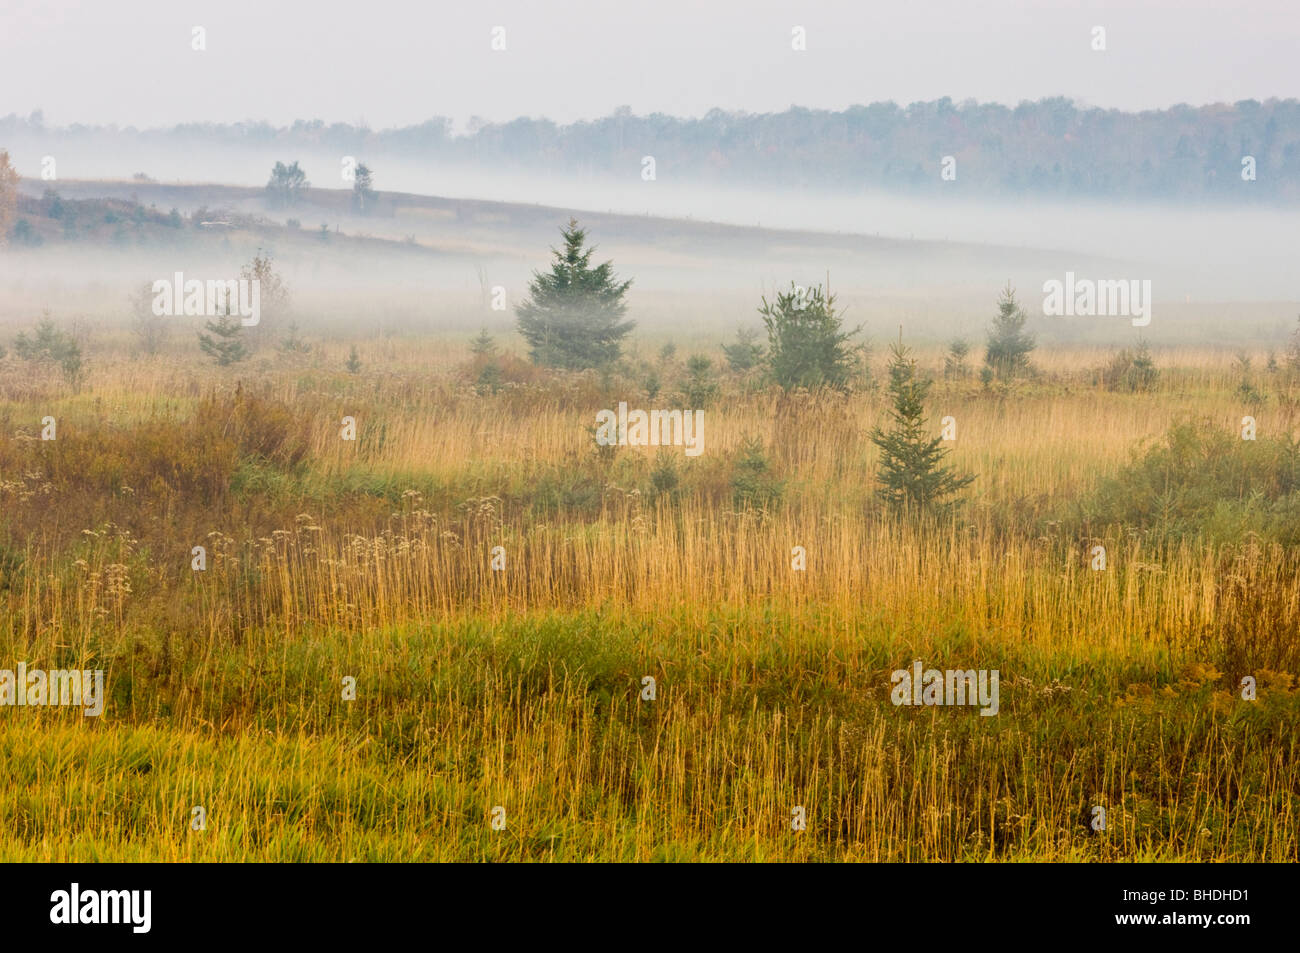 Morning mists in meadow with spruces and grasses, Greater Sudbury, Ontario, Canada - Stock Image